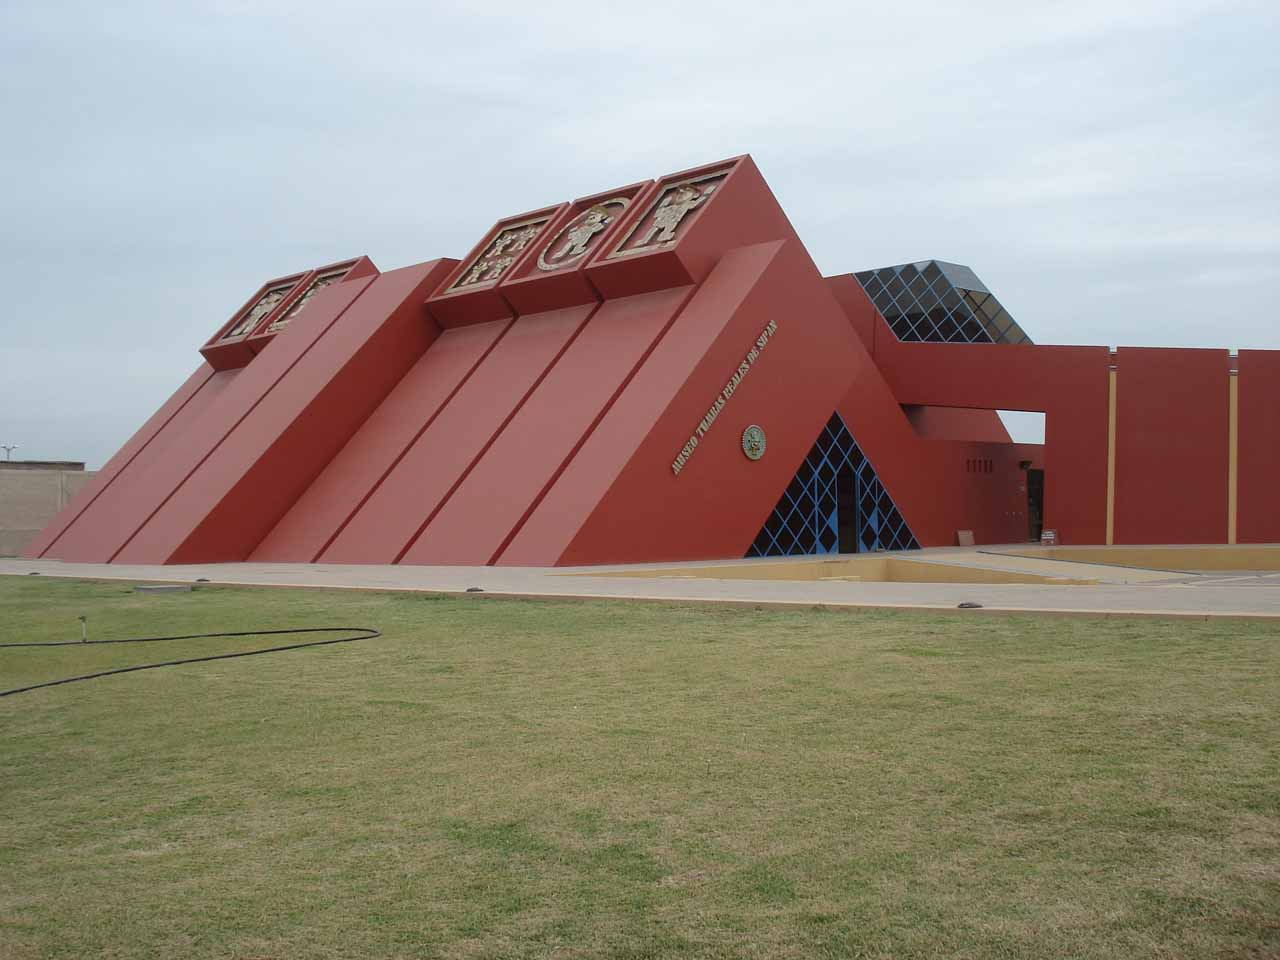 The maroon pyramid of the museum of Sipan